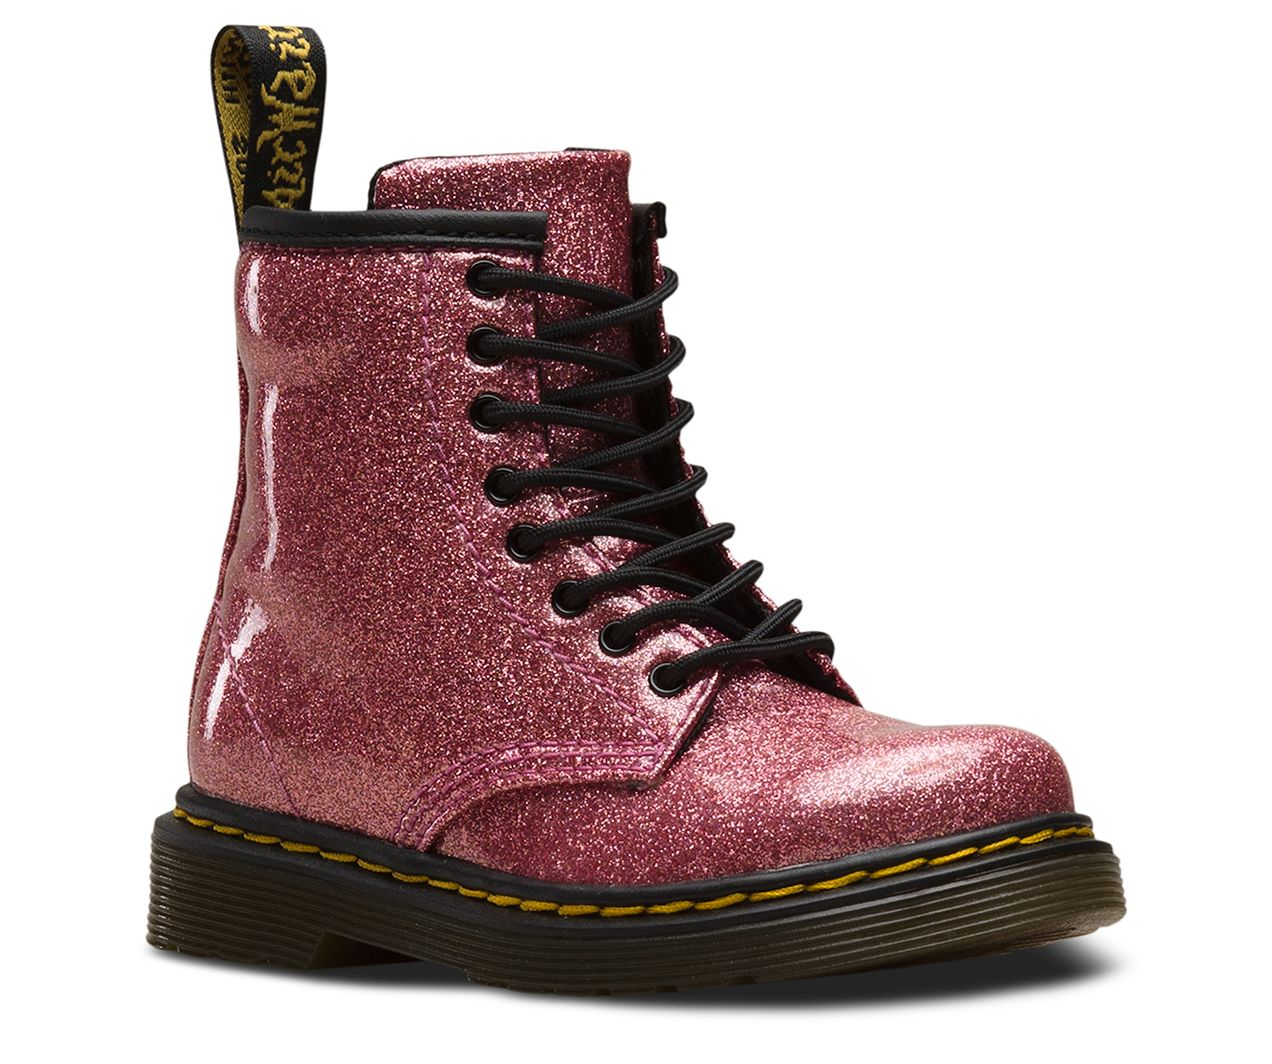 3dbb215e0425 Made for the most rebellious people on the planet — toddlers — this mini  version of our original 1460 boot comes in a shiny, sparkly glitter covered  with a ...